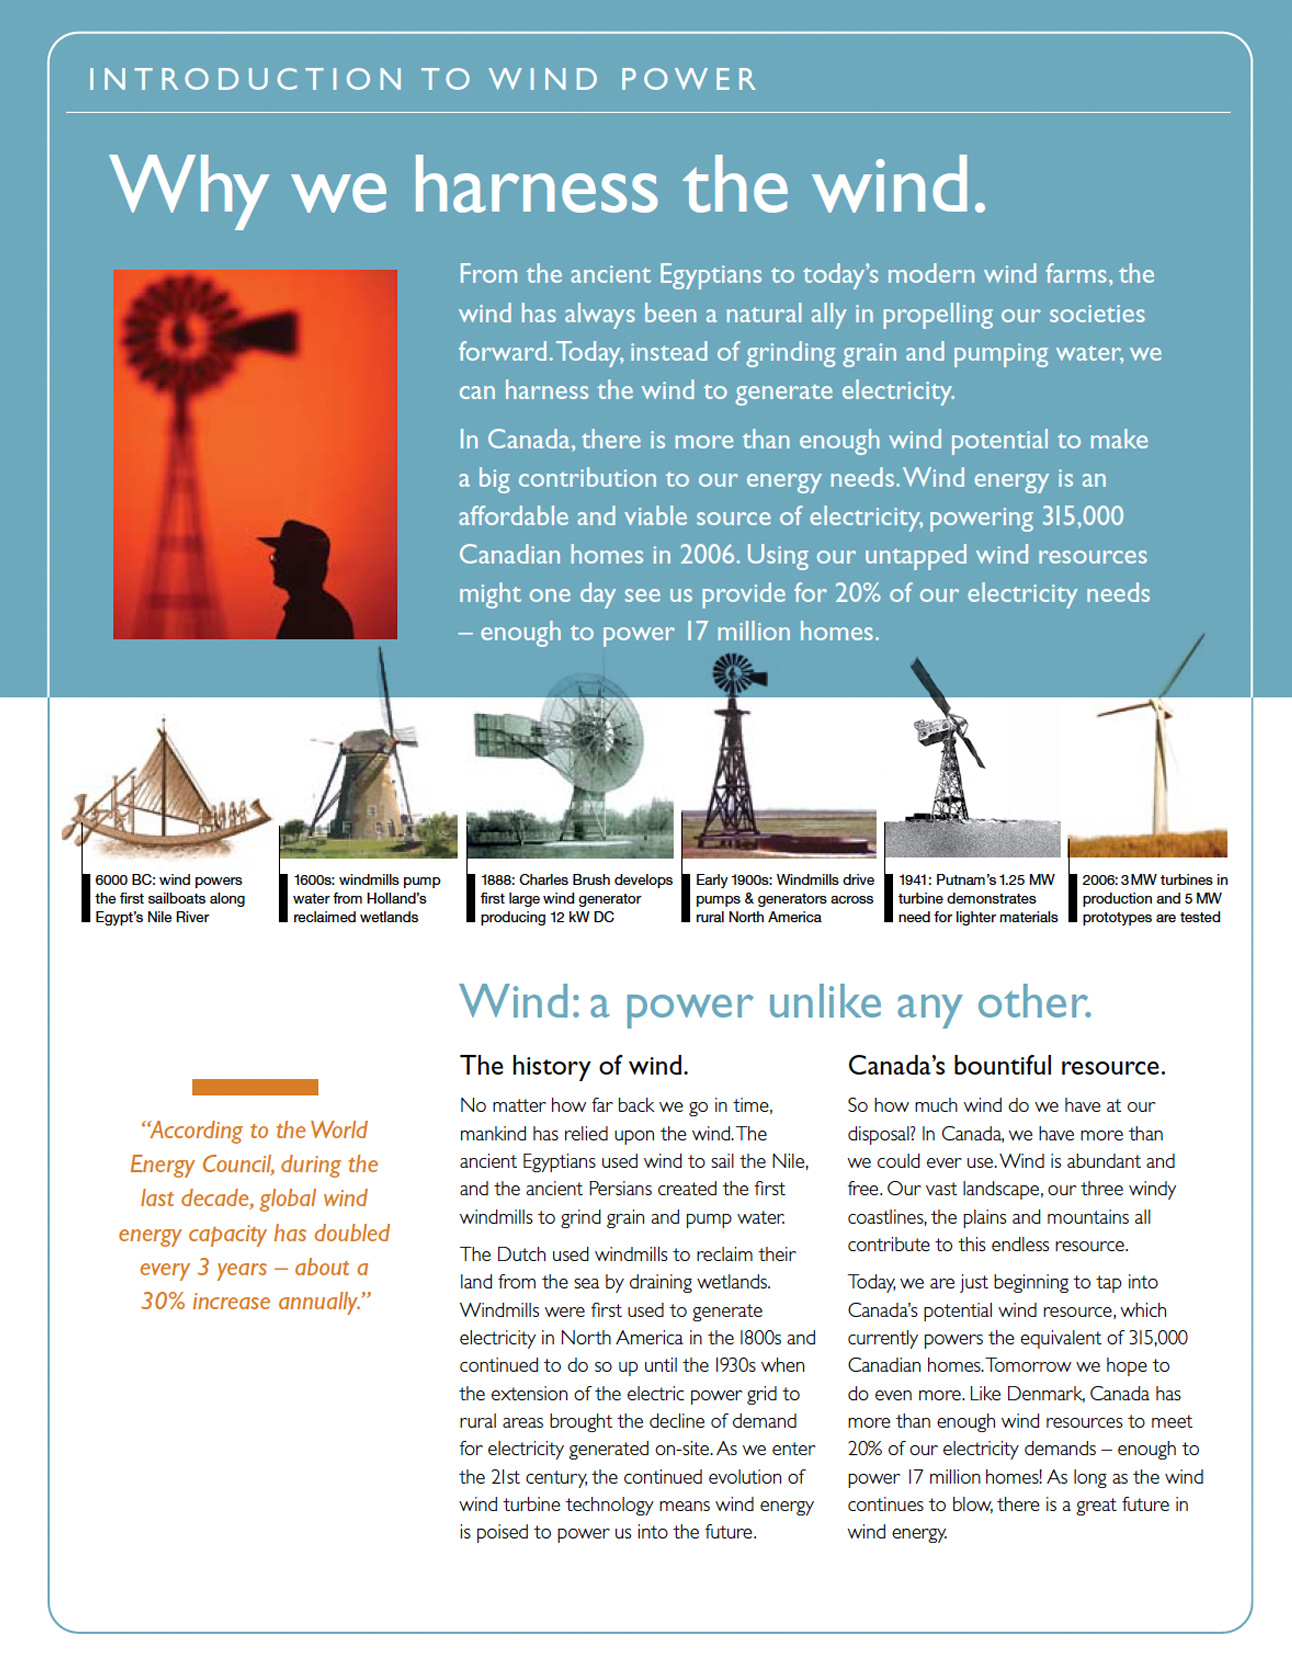 renewable energy infographics are peppered throughout this comprehensive information kit on wind energy in Canada